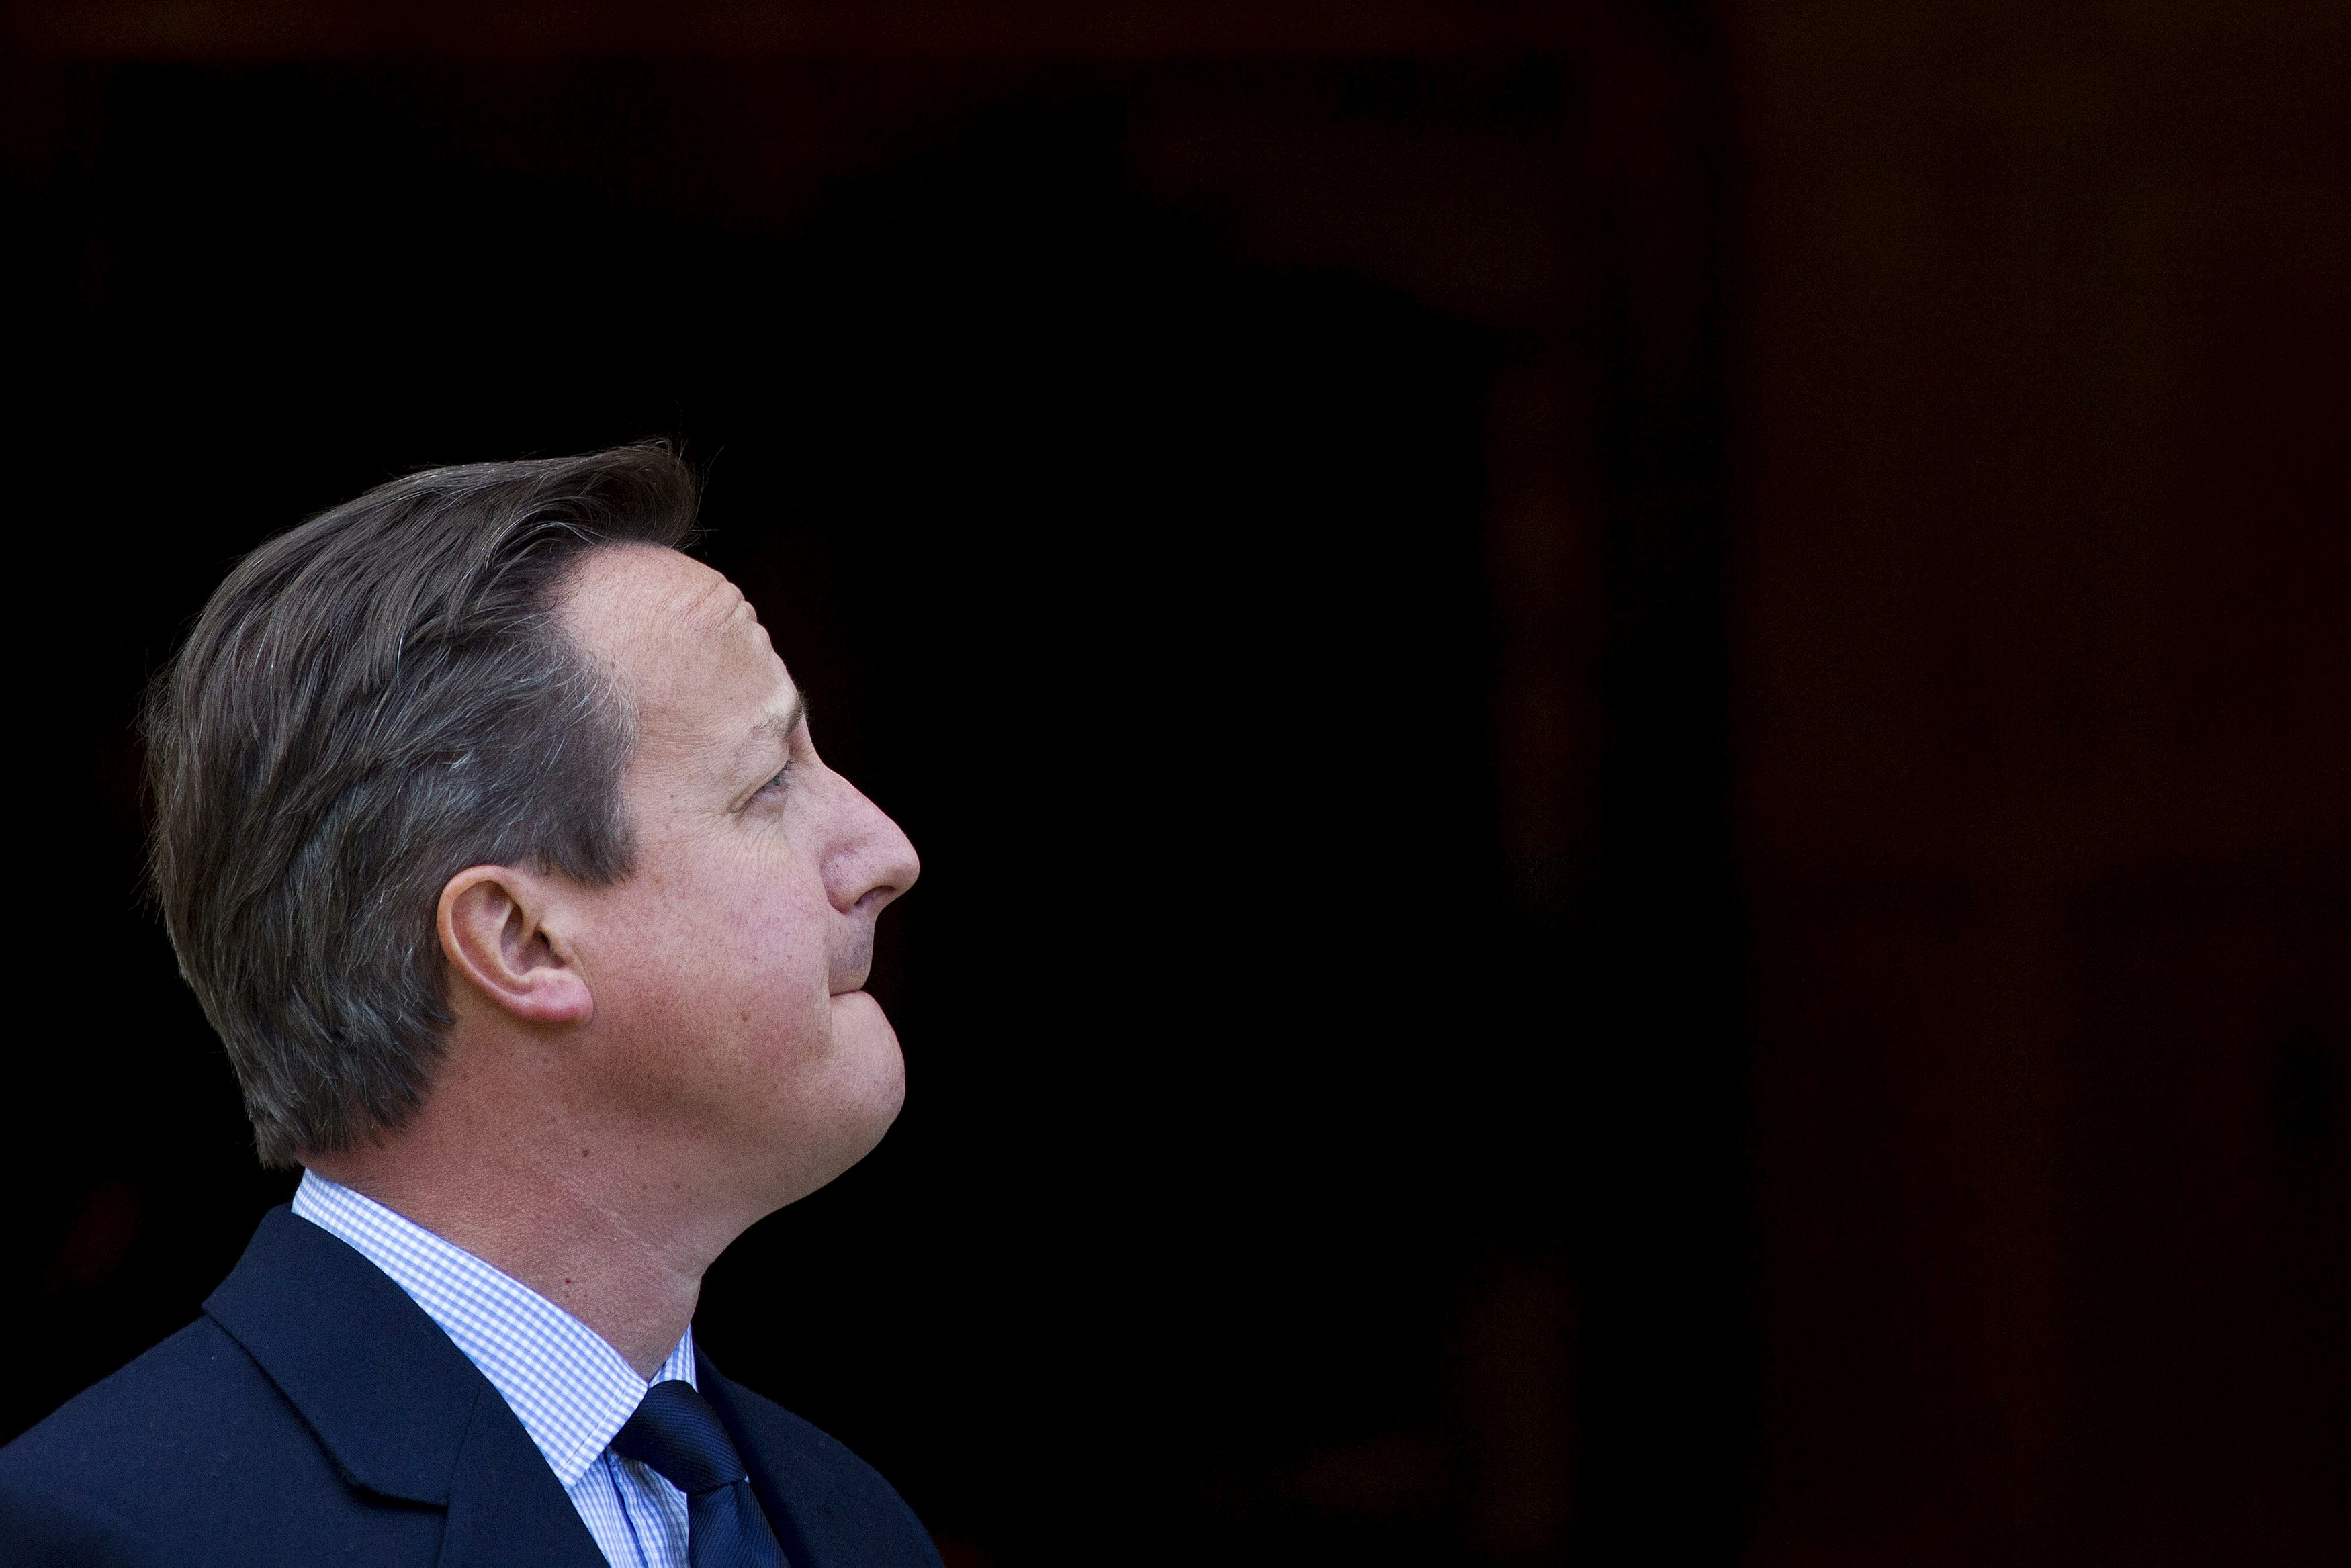 Cameron Uk Owned By China